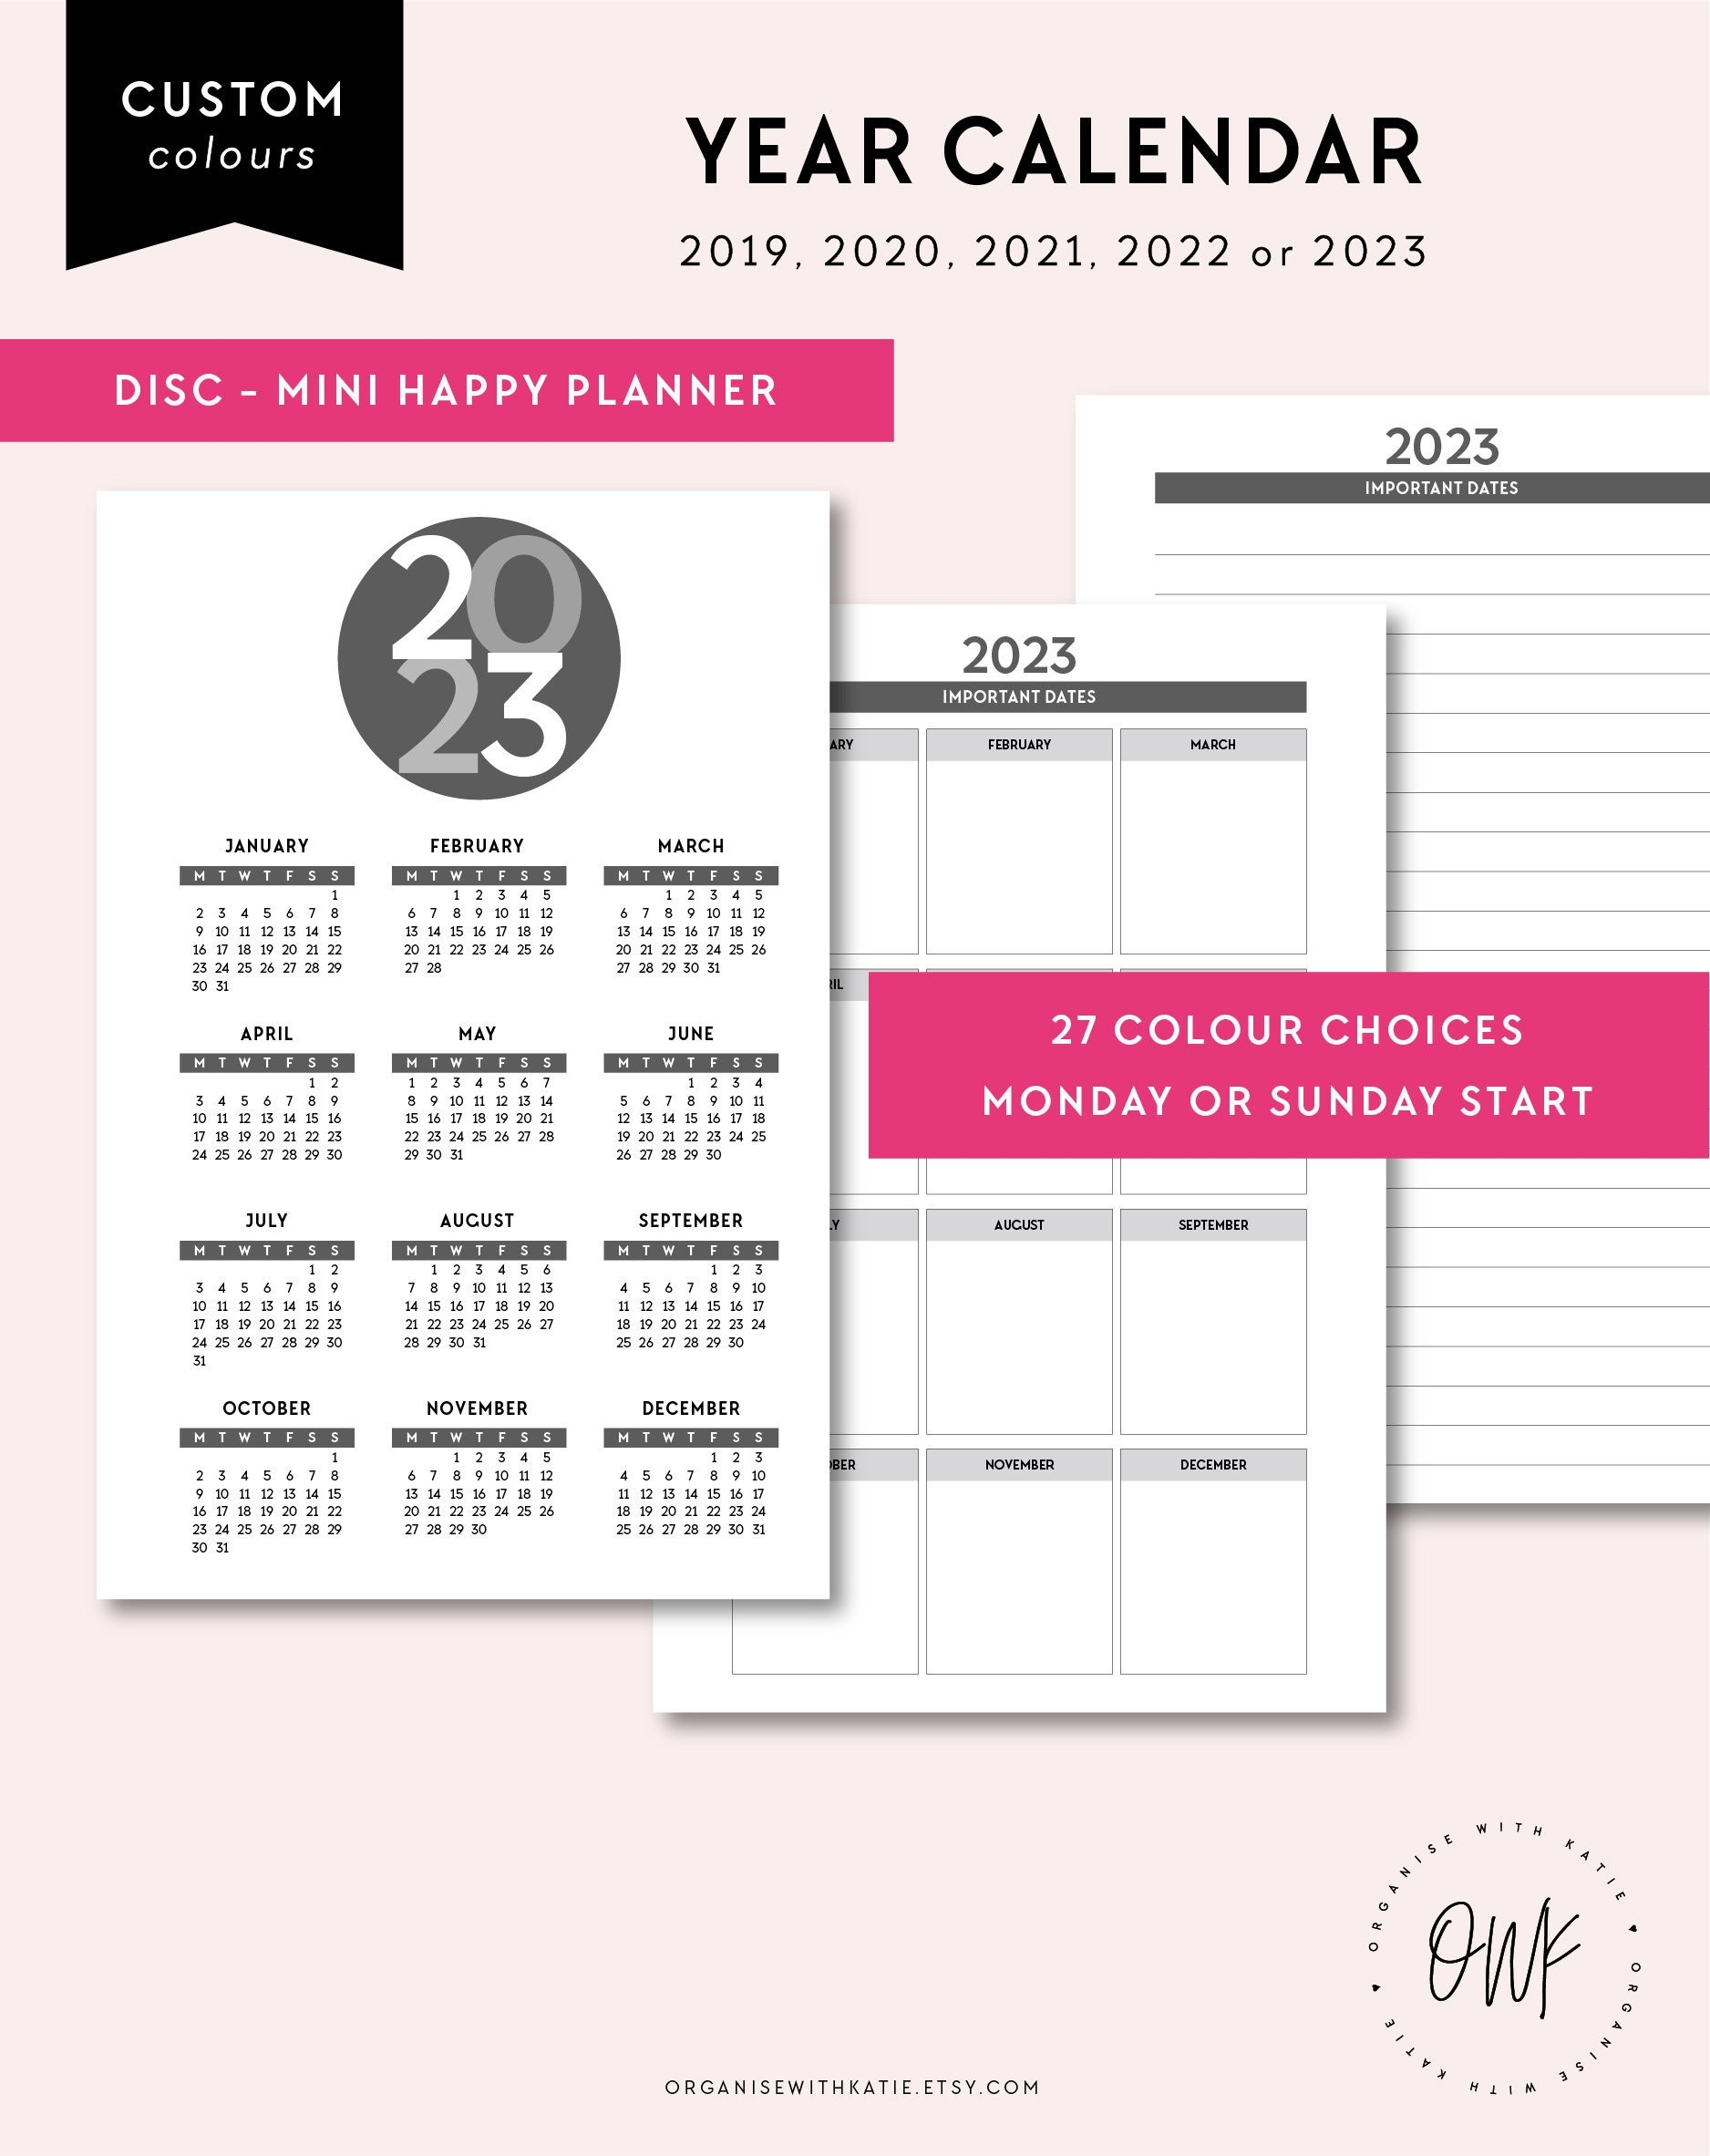 Mini Happy Planner 2019, 2020, 2021, 2022, 2023 Year Overview, Important  Dates, Year On 1 Page, Yearly Calendar, Monday Sunday Start  Ber 2020 Full Page Calendar